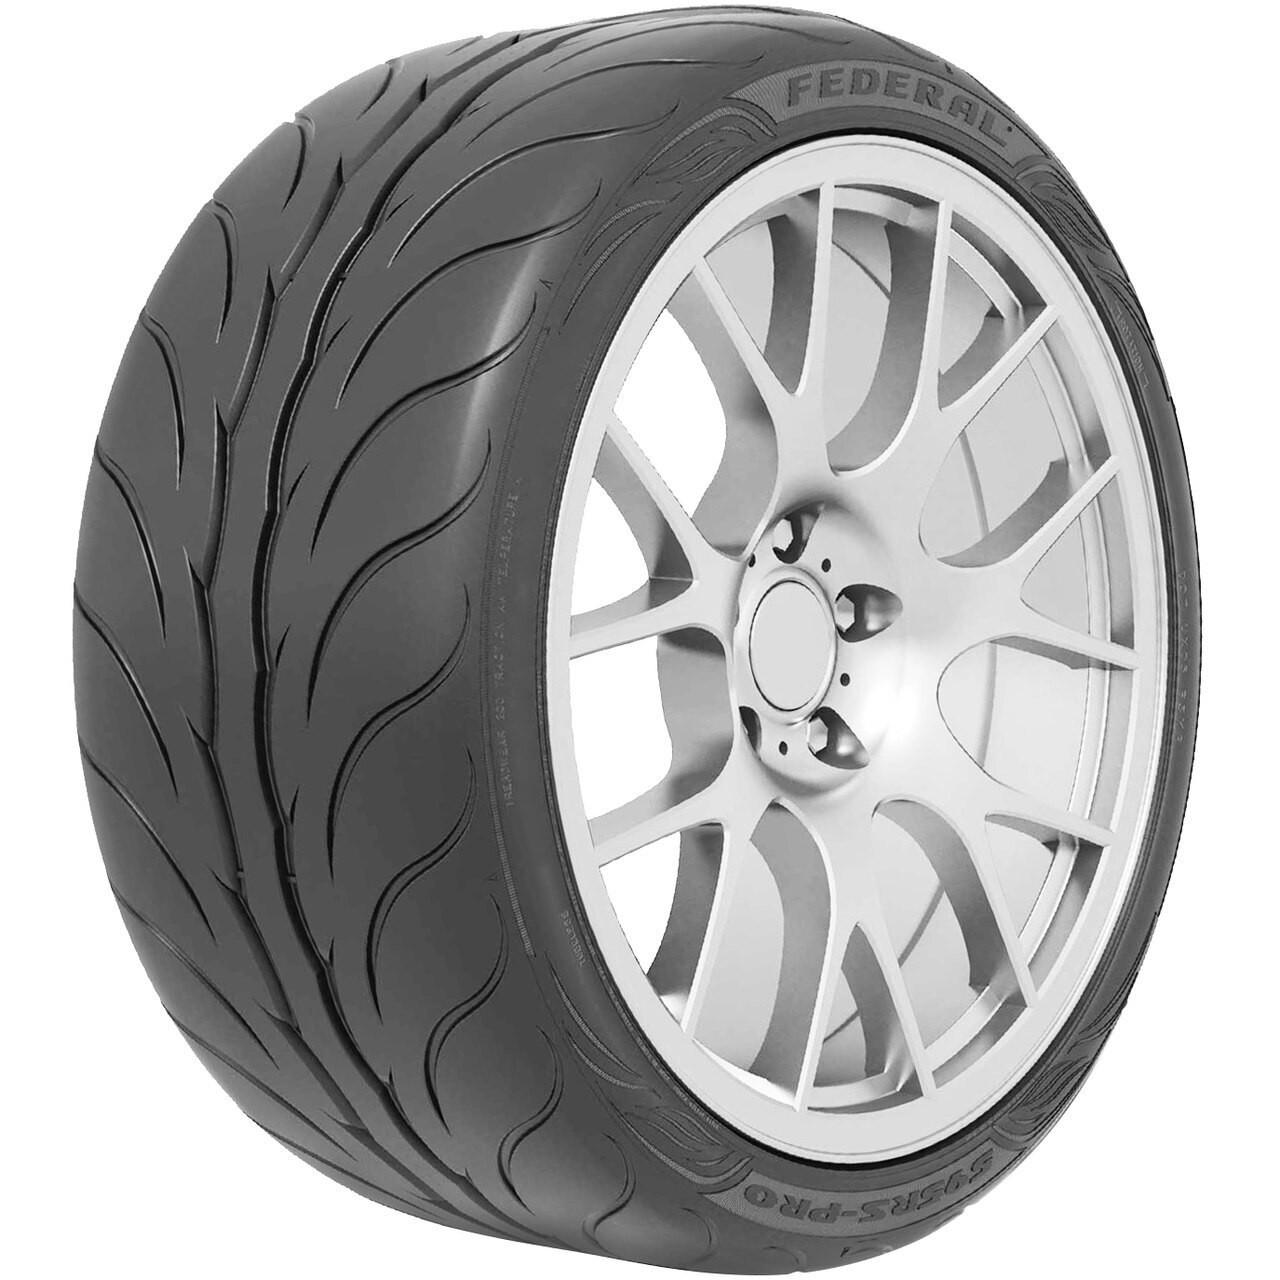 195/50ZR15 FEDERAL 595RS-PRO 86W XL 200AAA***RACING TIRE***